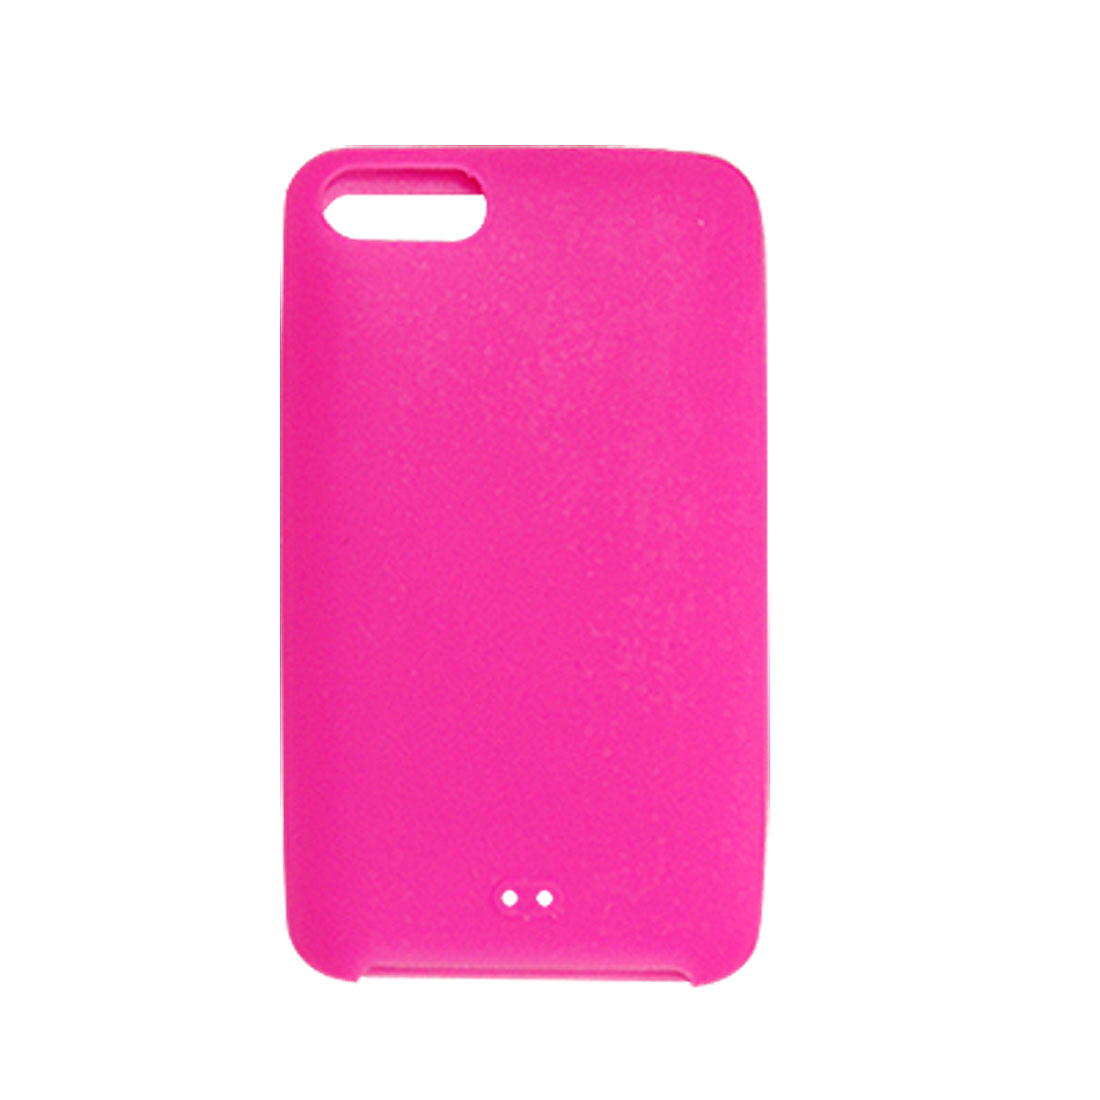 Magenta Silicone Case for iPod Touch 2G w Screen Guard